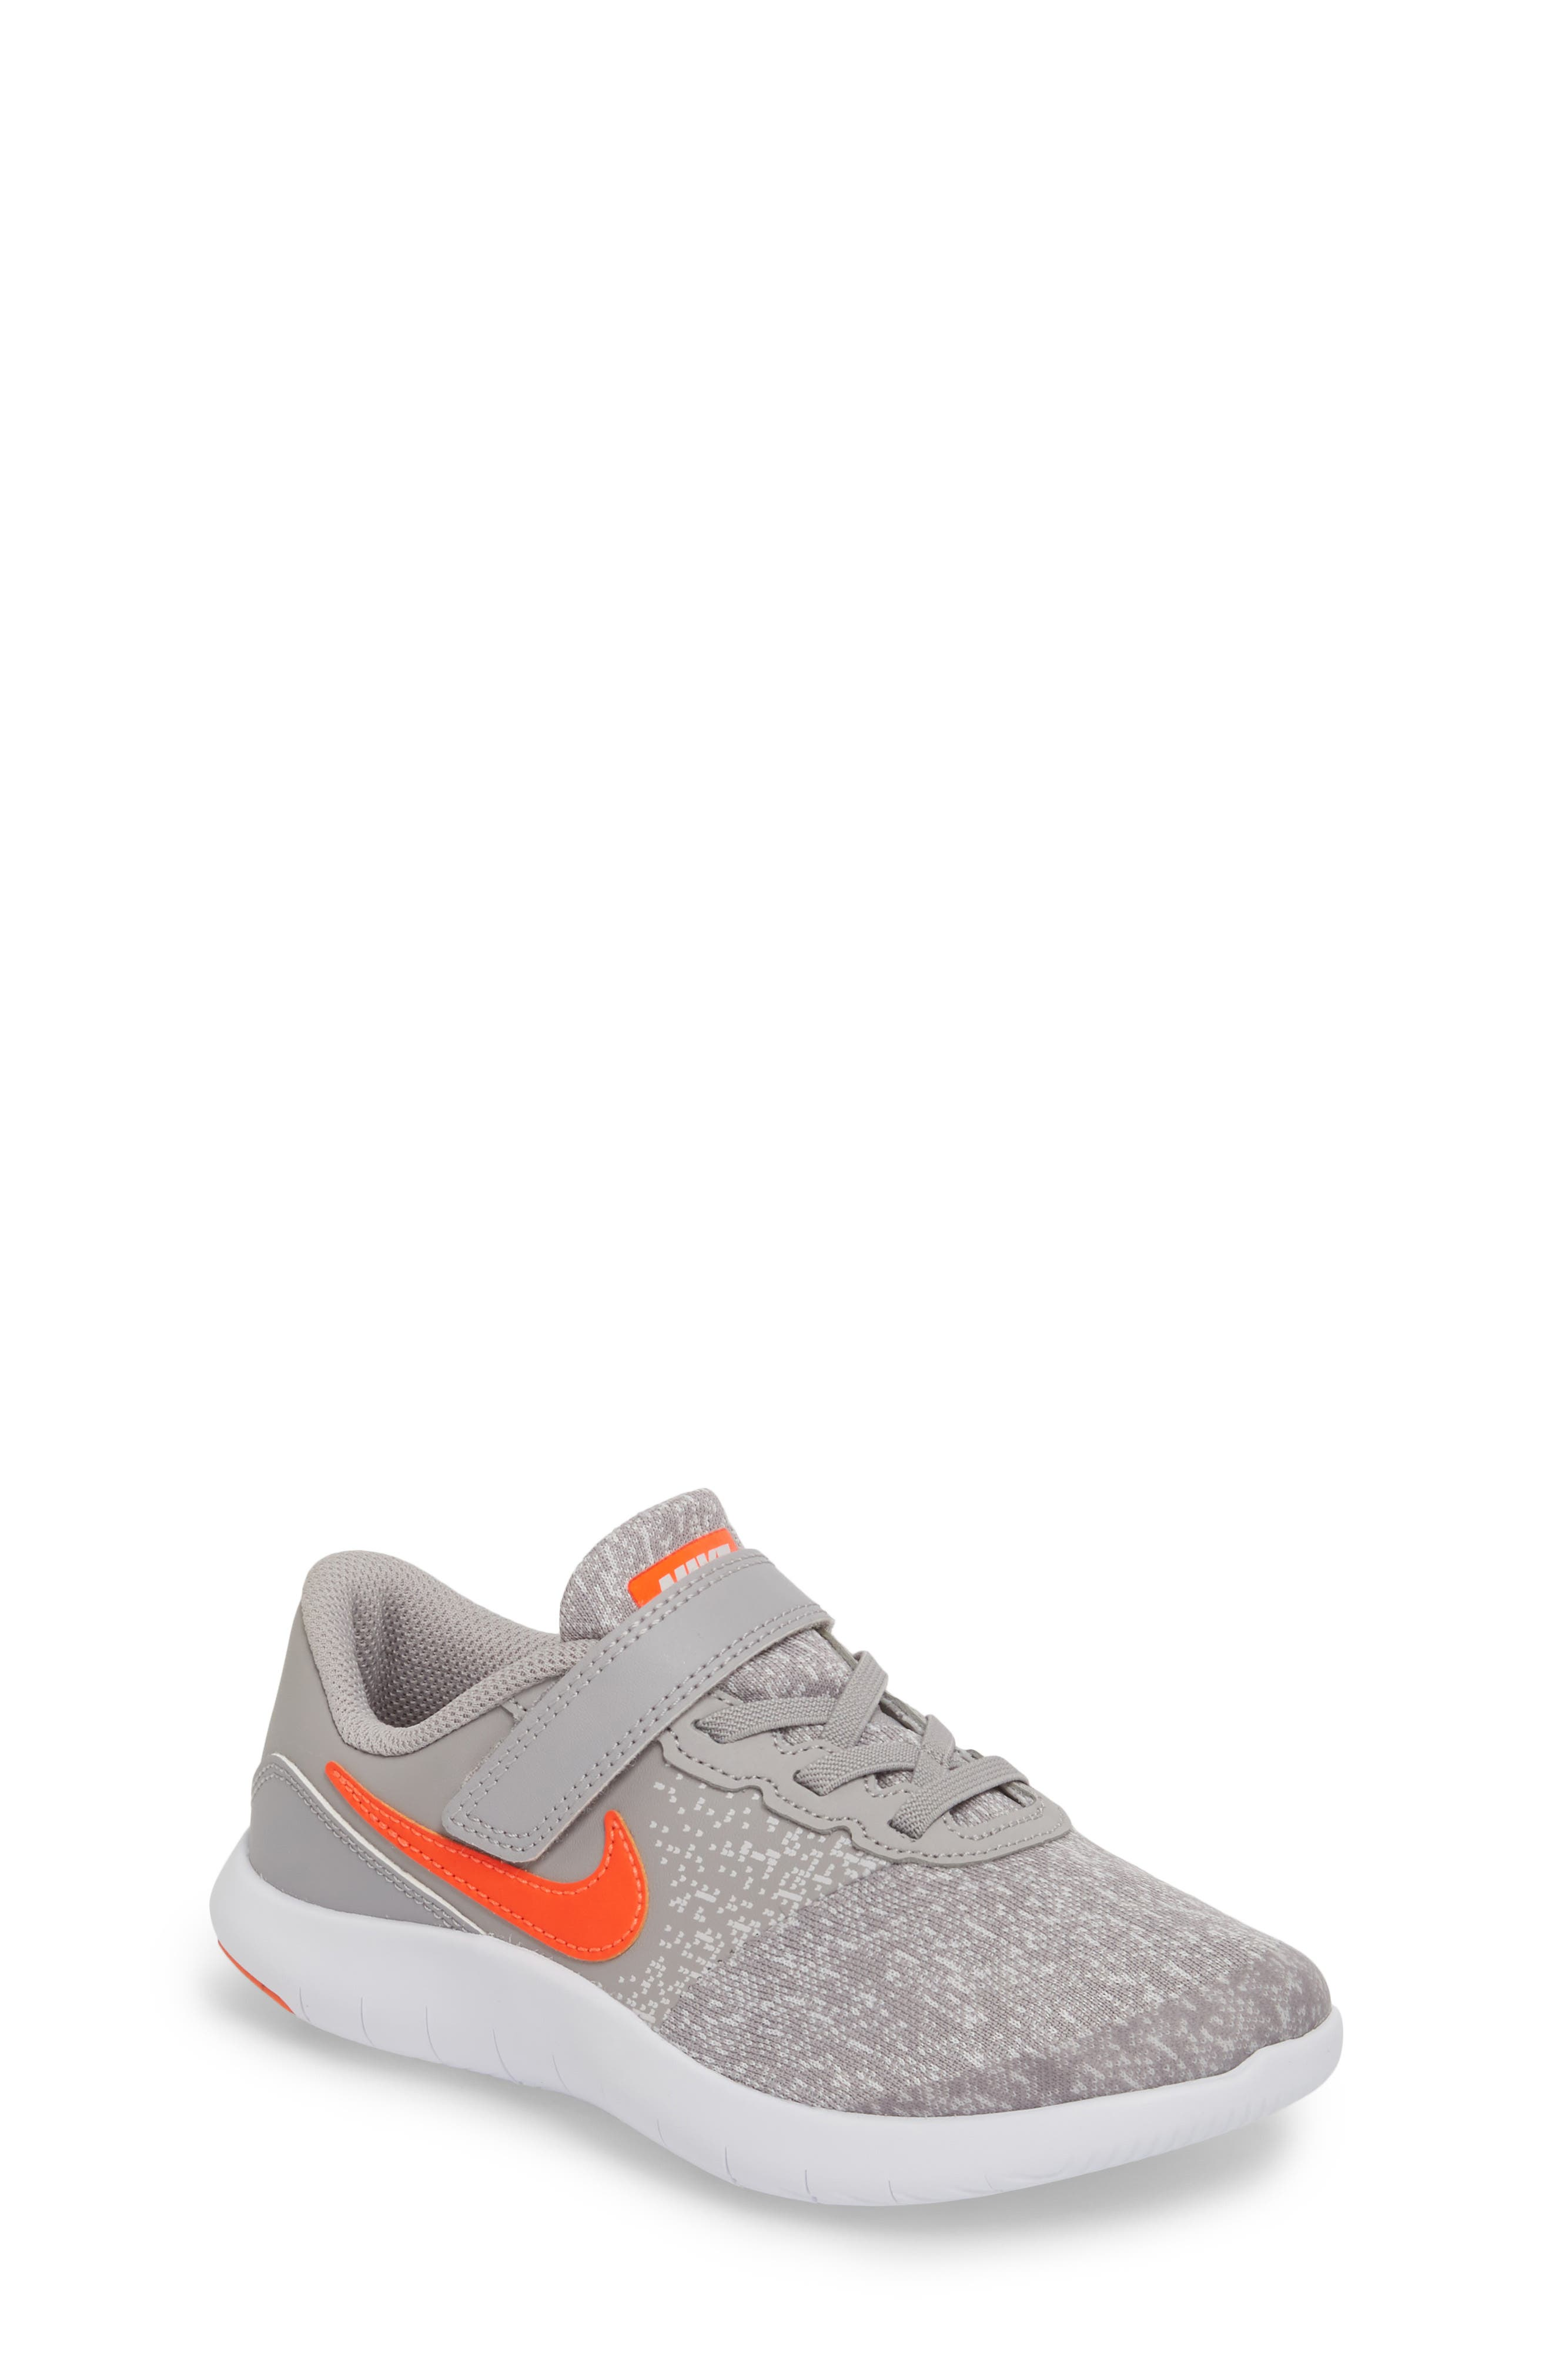 Flex Contact Running Shoe,                             Main thumbnail 2, color,                             Atmosphere Grey/ Total Crimson